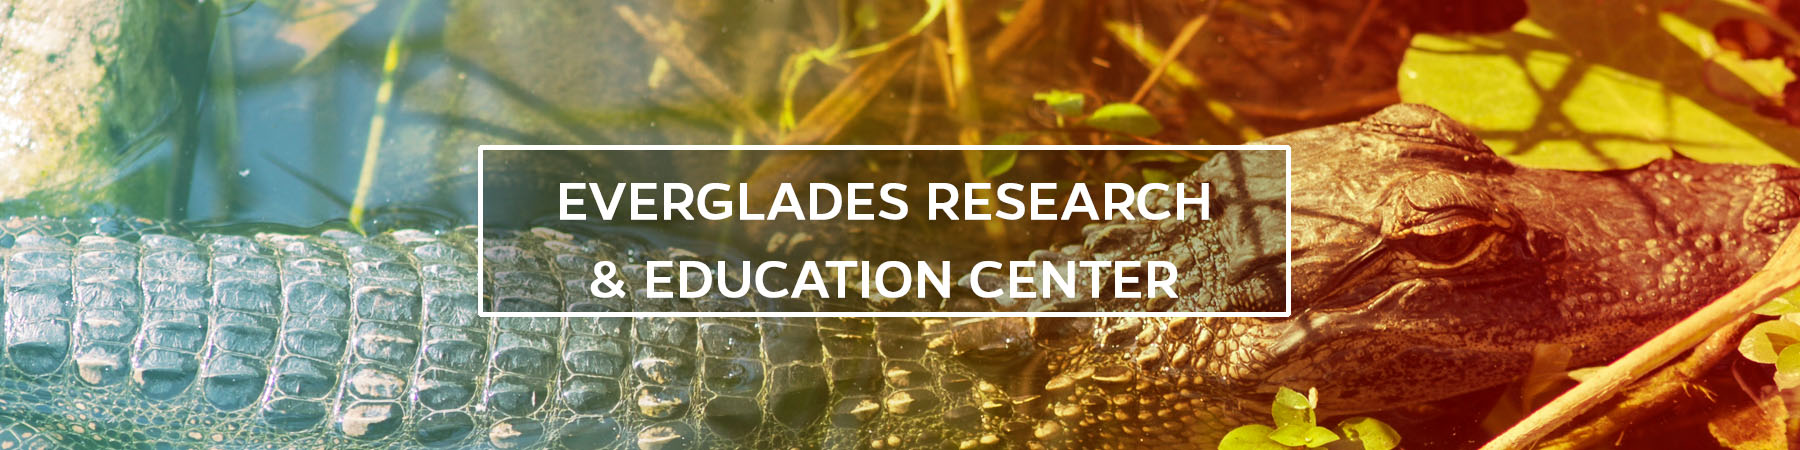 Everglades Research & Education Center